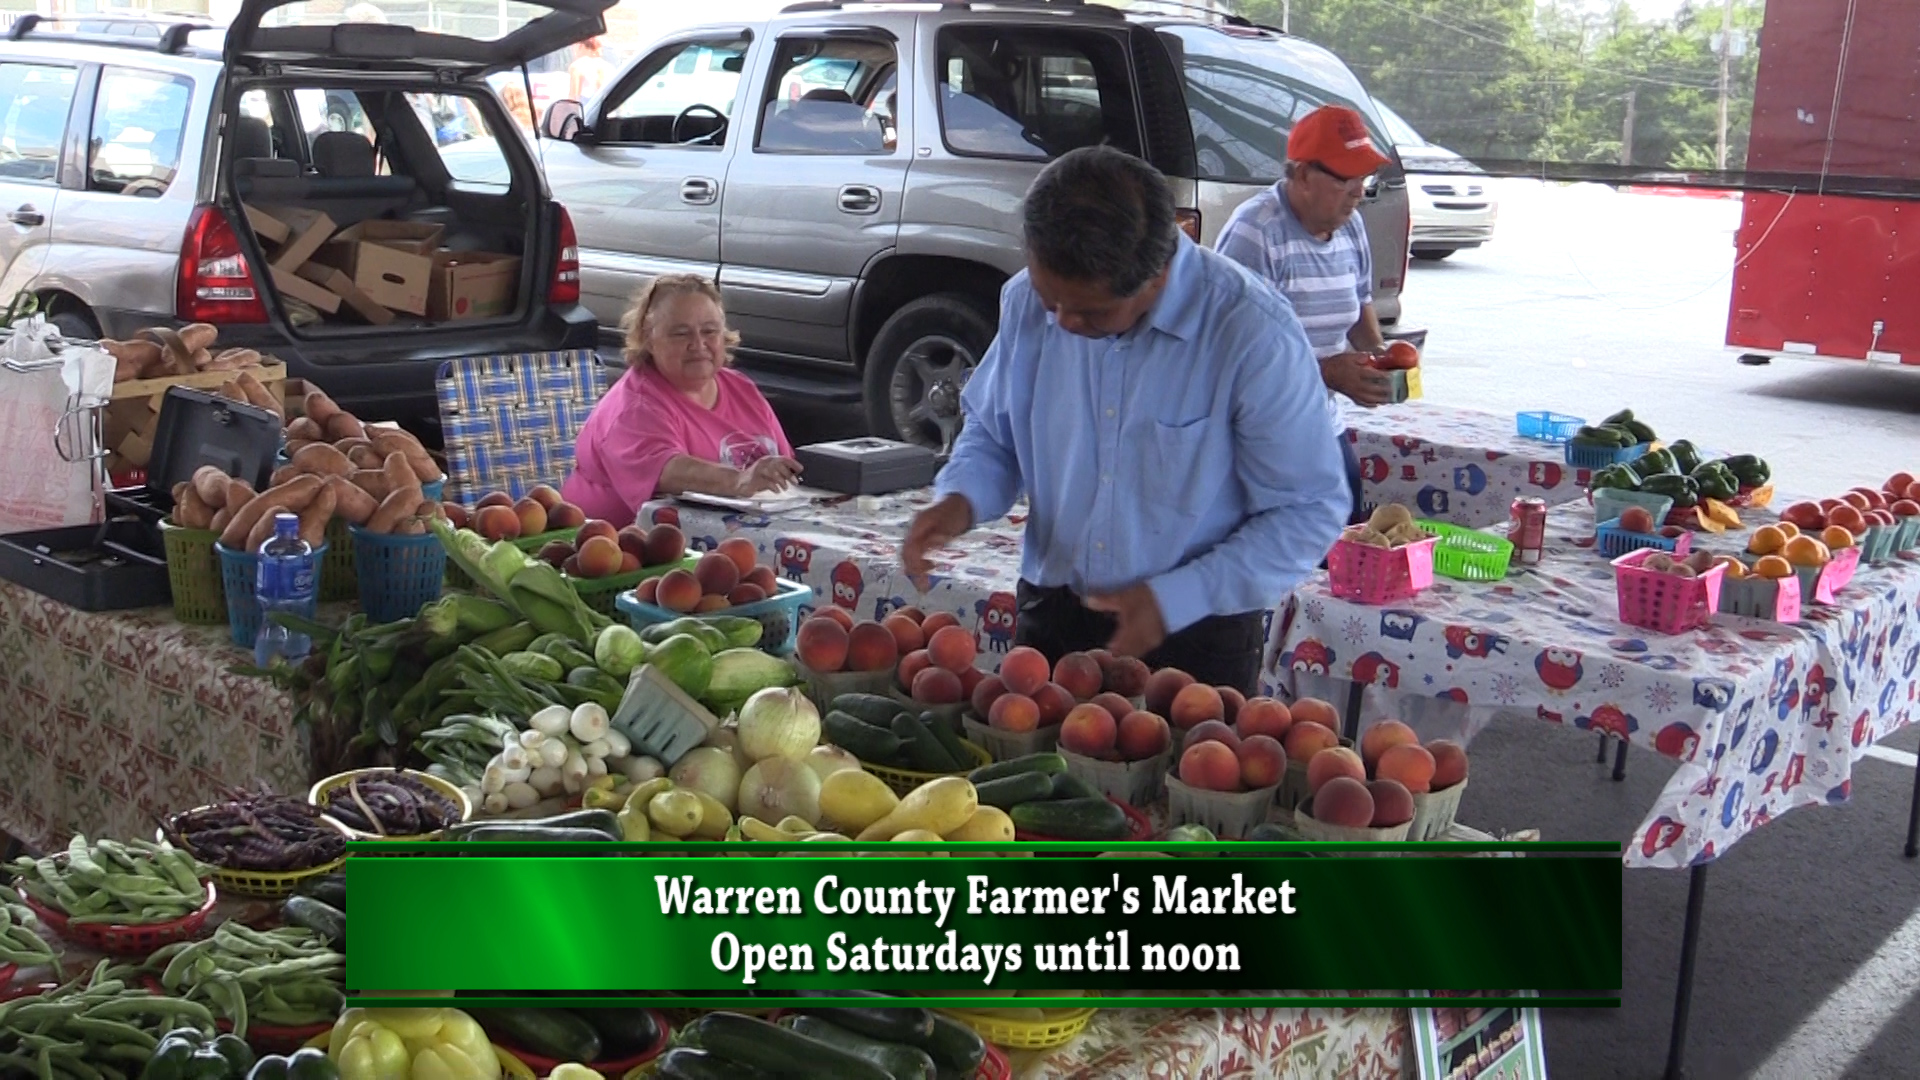 VIDEO - Warren County Farmer's Market